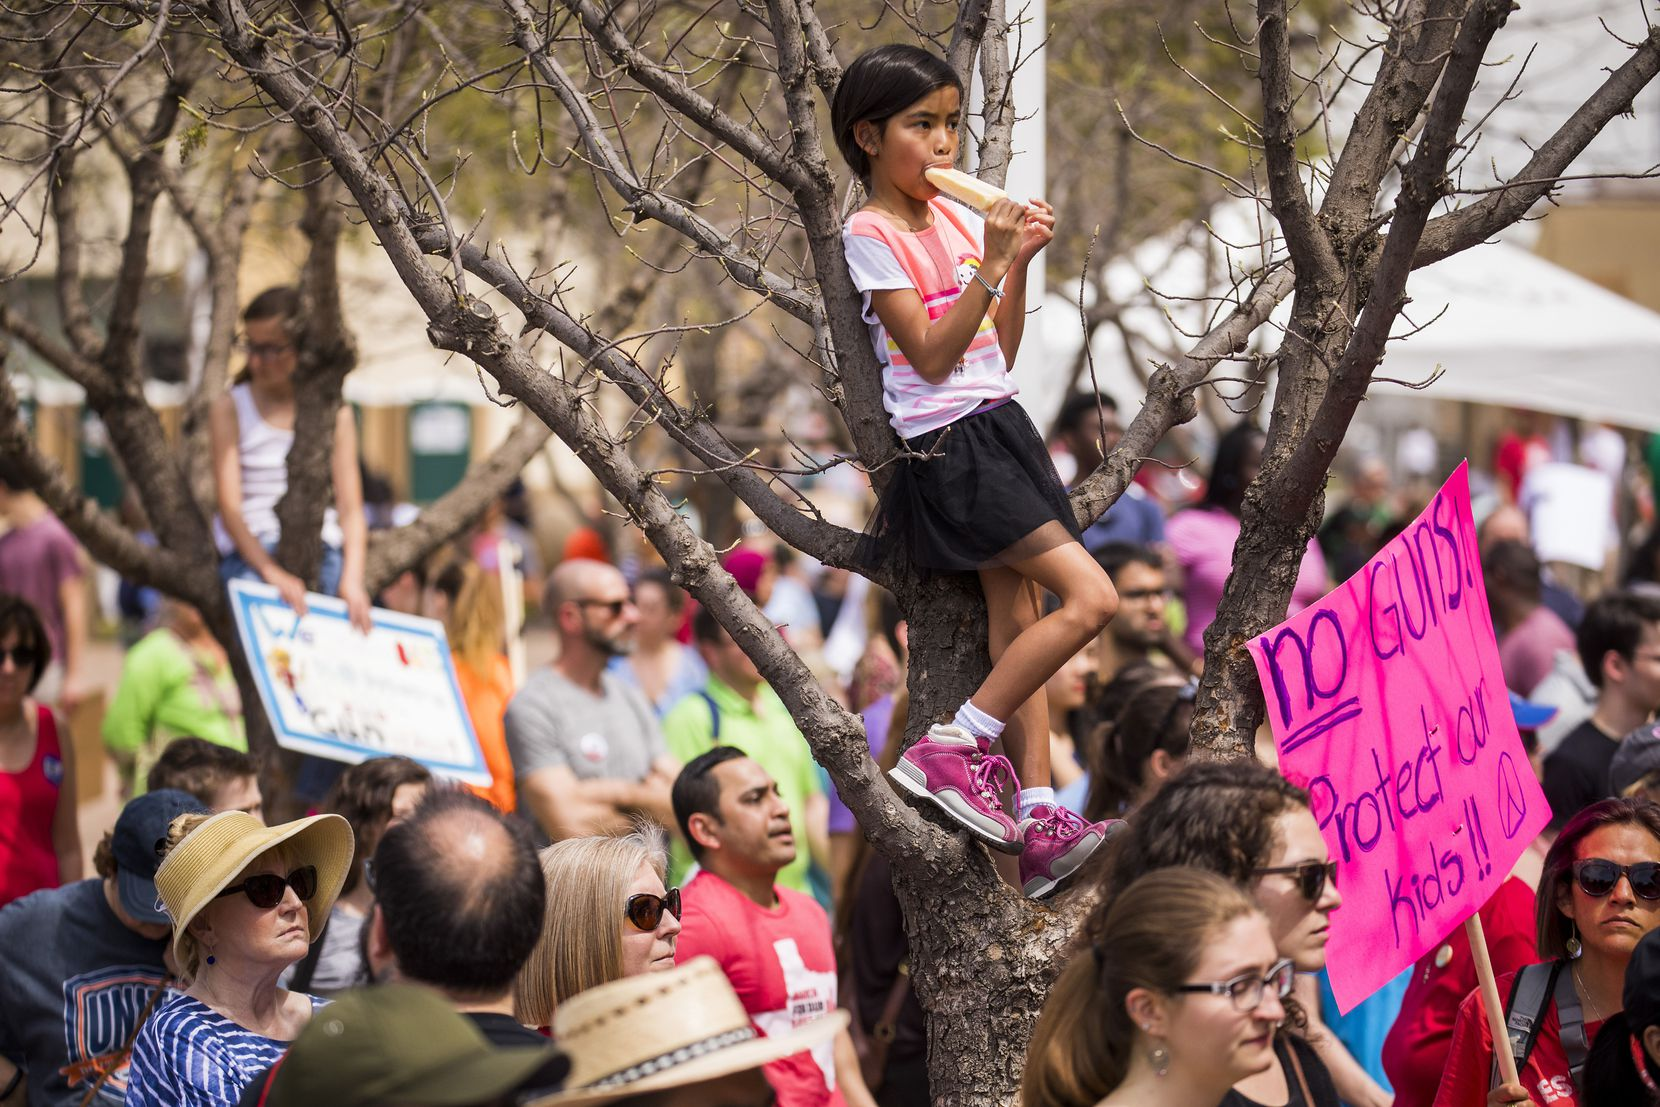 Isabelle Garcia-Chu, 8, of Richardson, stands in a tree while eating a popsicle and listening to speakers.